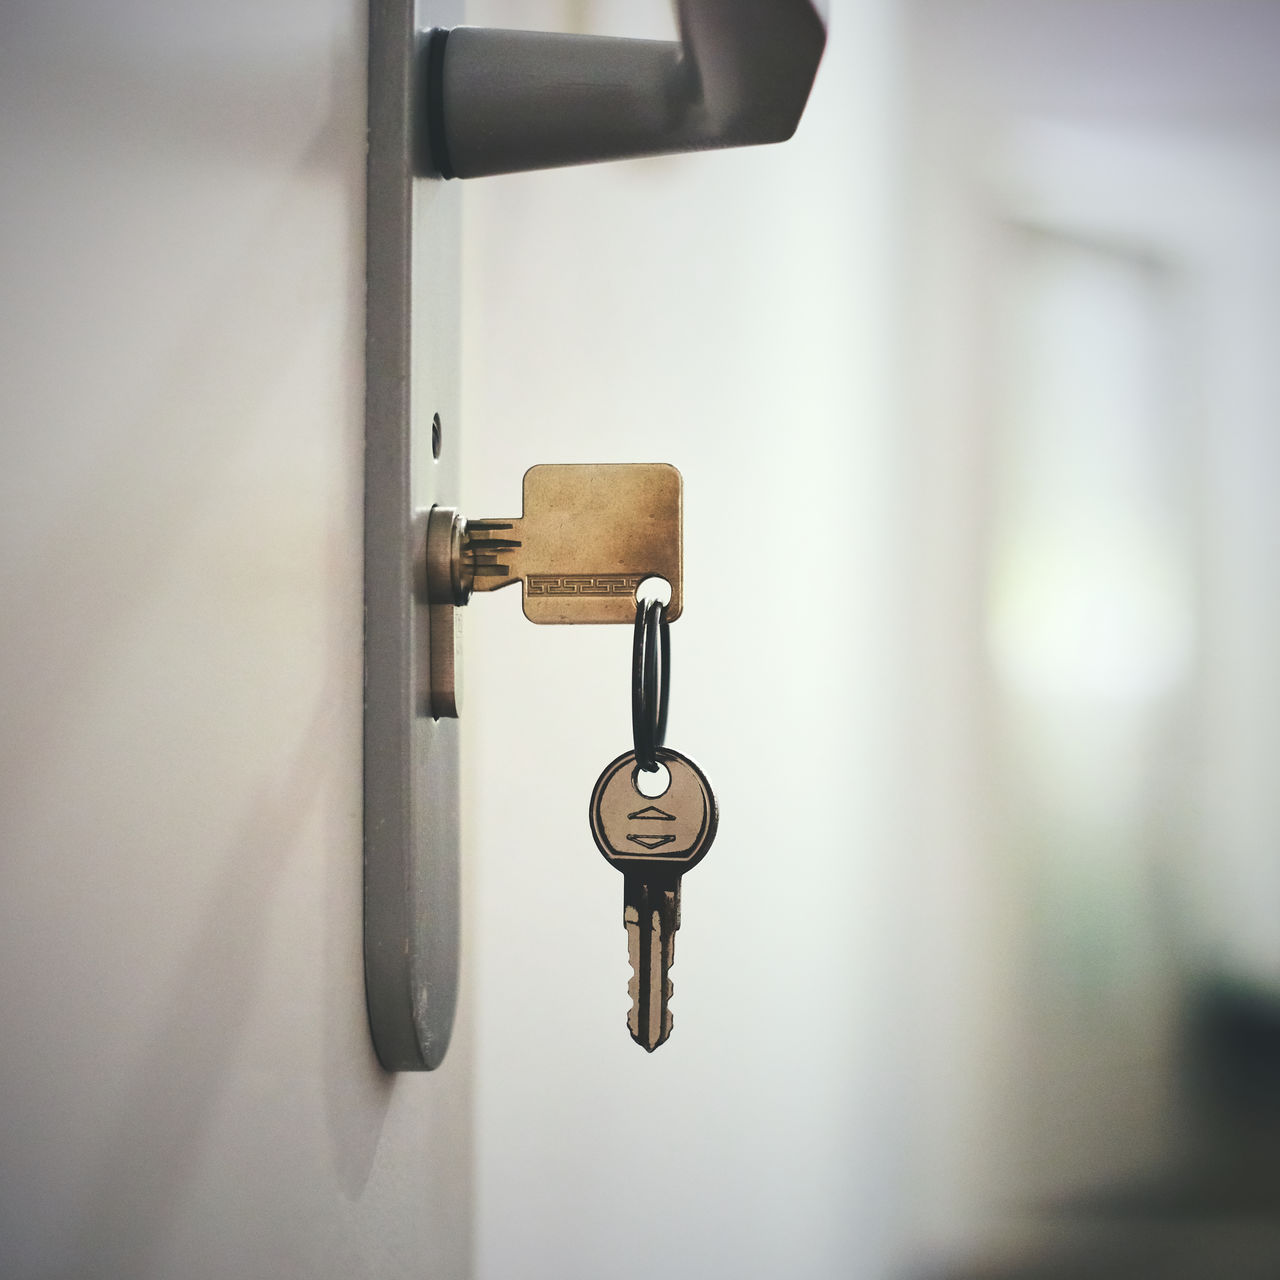 door, security, lock, close-up, metal, key, hanging, safety, focus on foreground, key ring, protection, no people, latch, indoors, day, prison